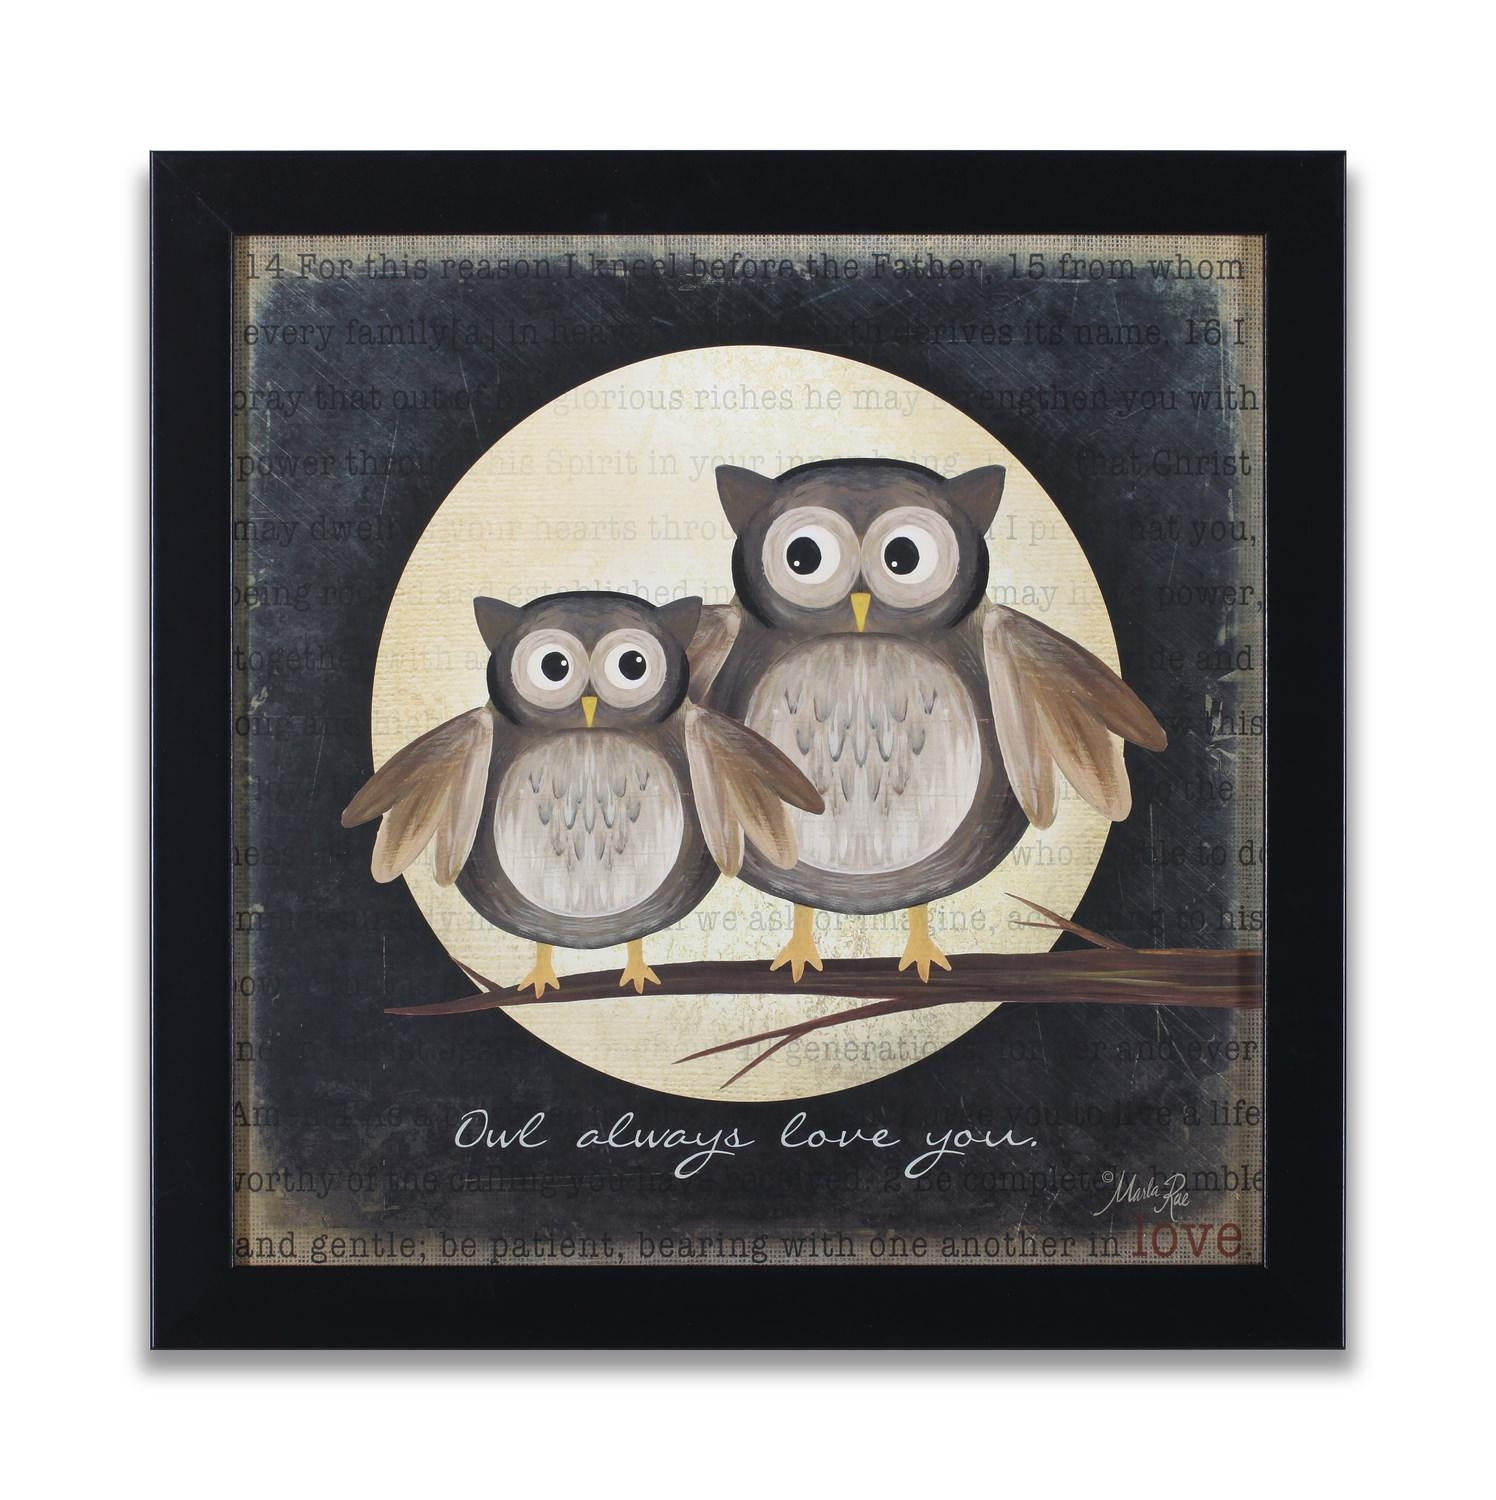 Owl Love You Framed Wall Art | Hom Furniture | Furniture Stores In Regarding Owl Framed Wall Art (View 15 of 20)